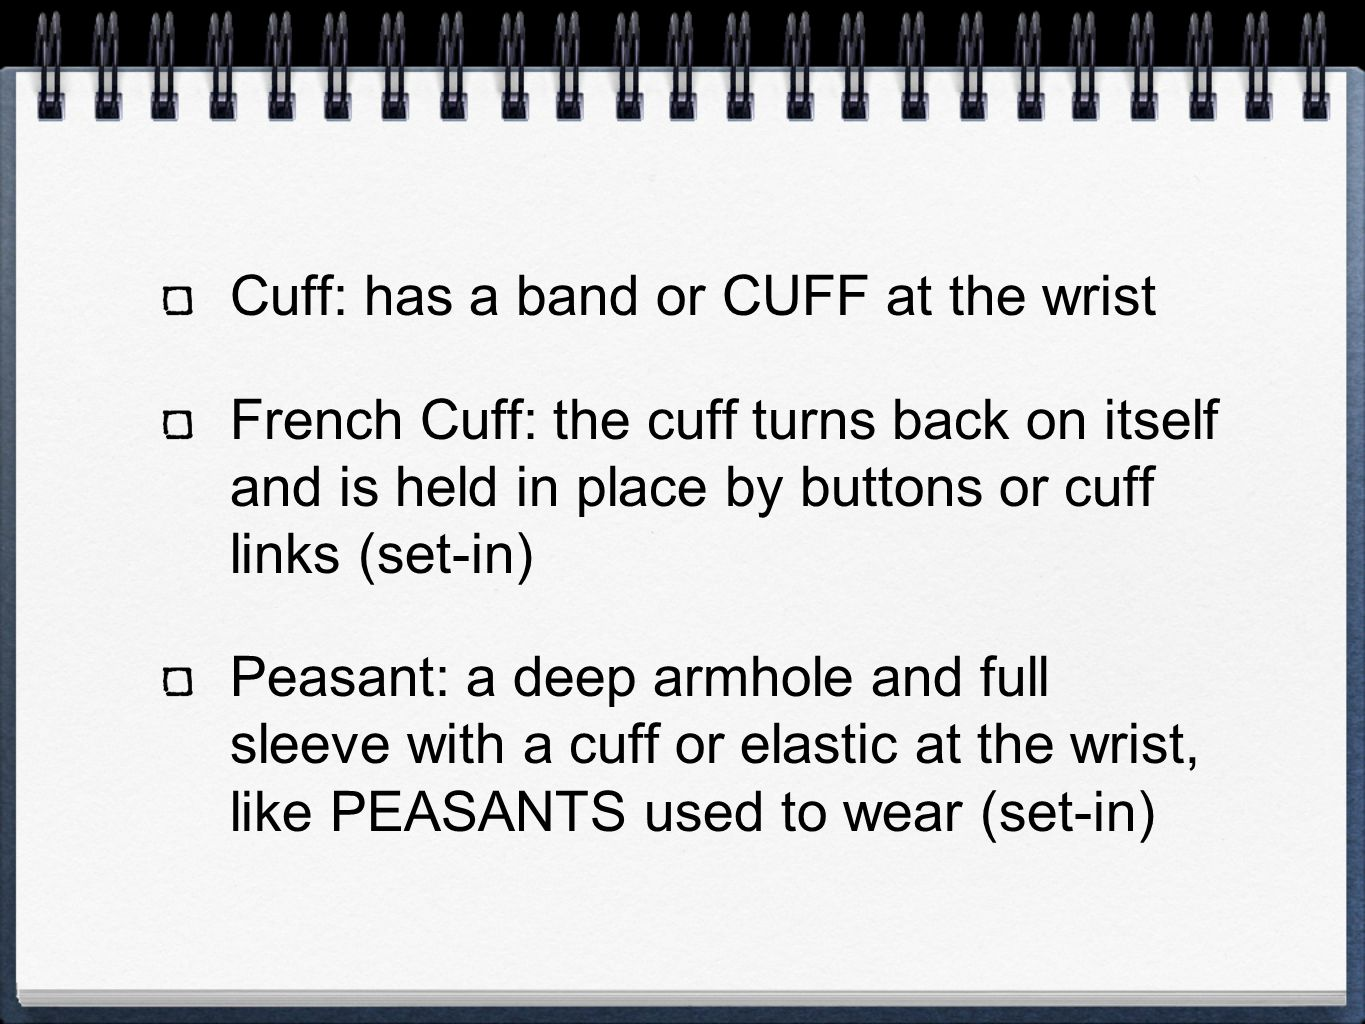 Cuff: has a band or CUFF at the wrist French Cuff: the cuff turns back on itself and is held in place by buttons or cuff links (set-in) Peasant: a deep armhole and full sleeve with a cuff or elastic at the wrist, like PEASANTS used to wear (set-in)